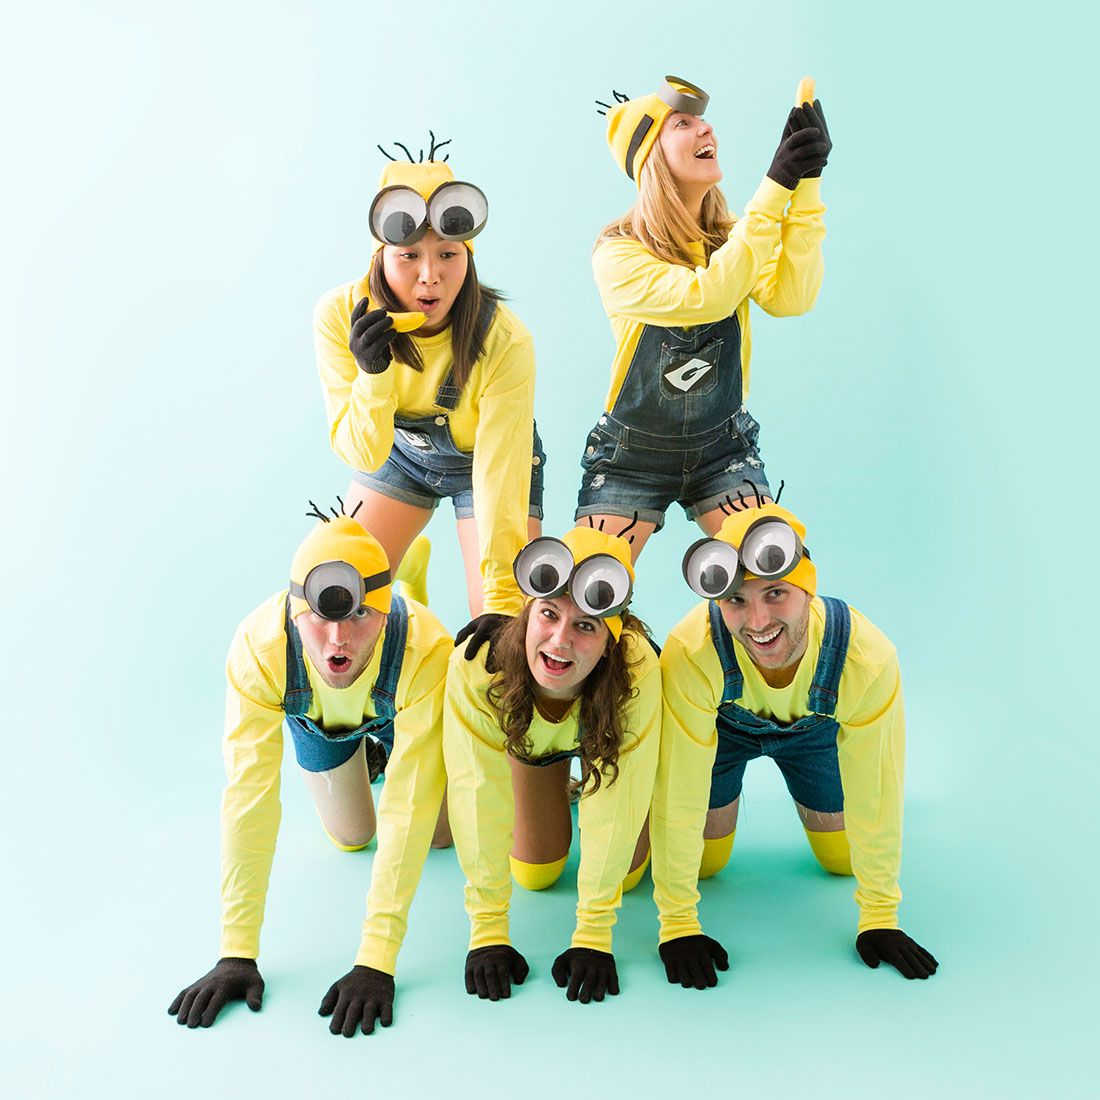 Make Minion Costumes for Your Squad This Halloween